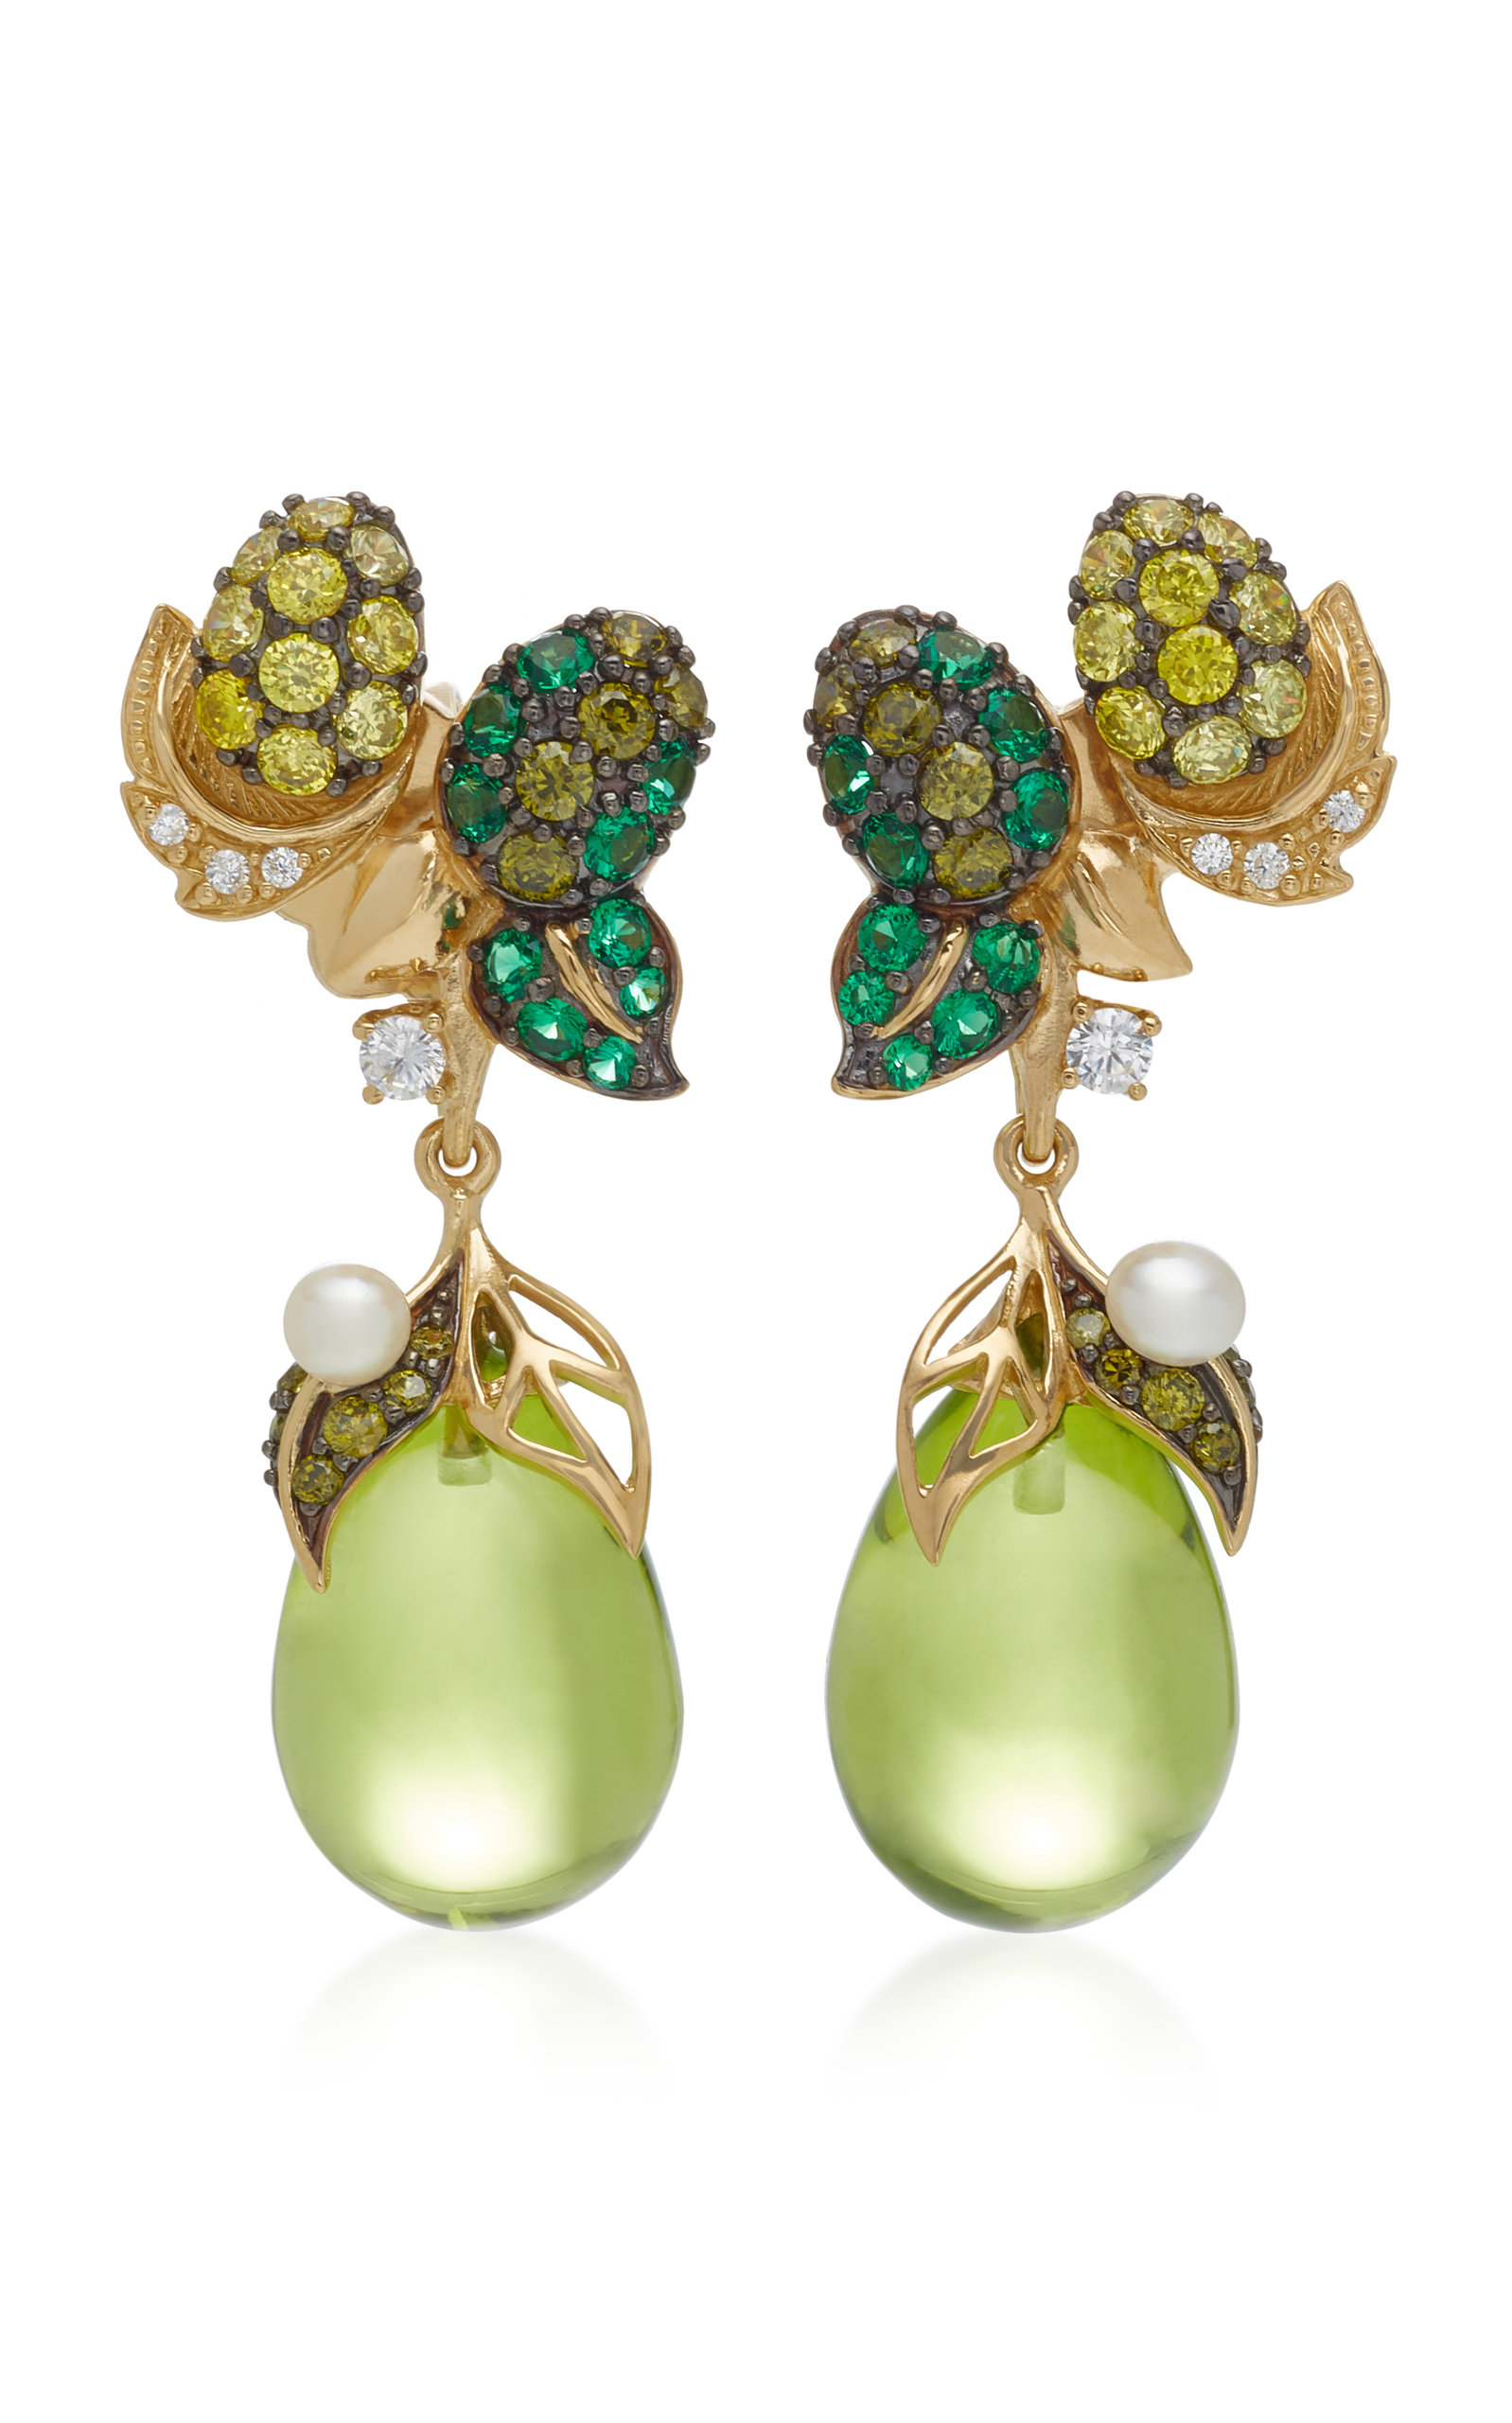 ANABELA CHAN Appleberry 18K Gold Vermeil Multi-Stone Earrings in Green